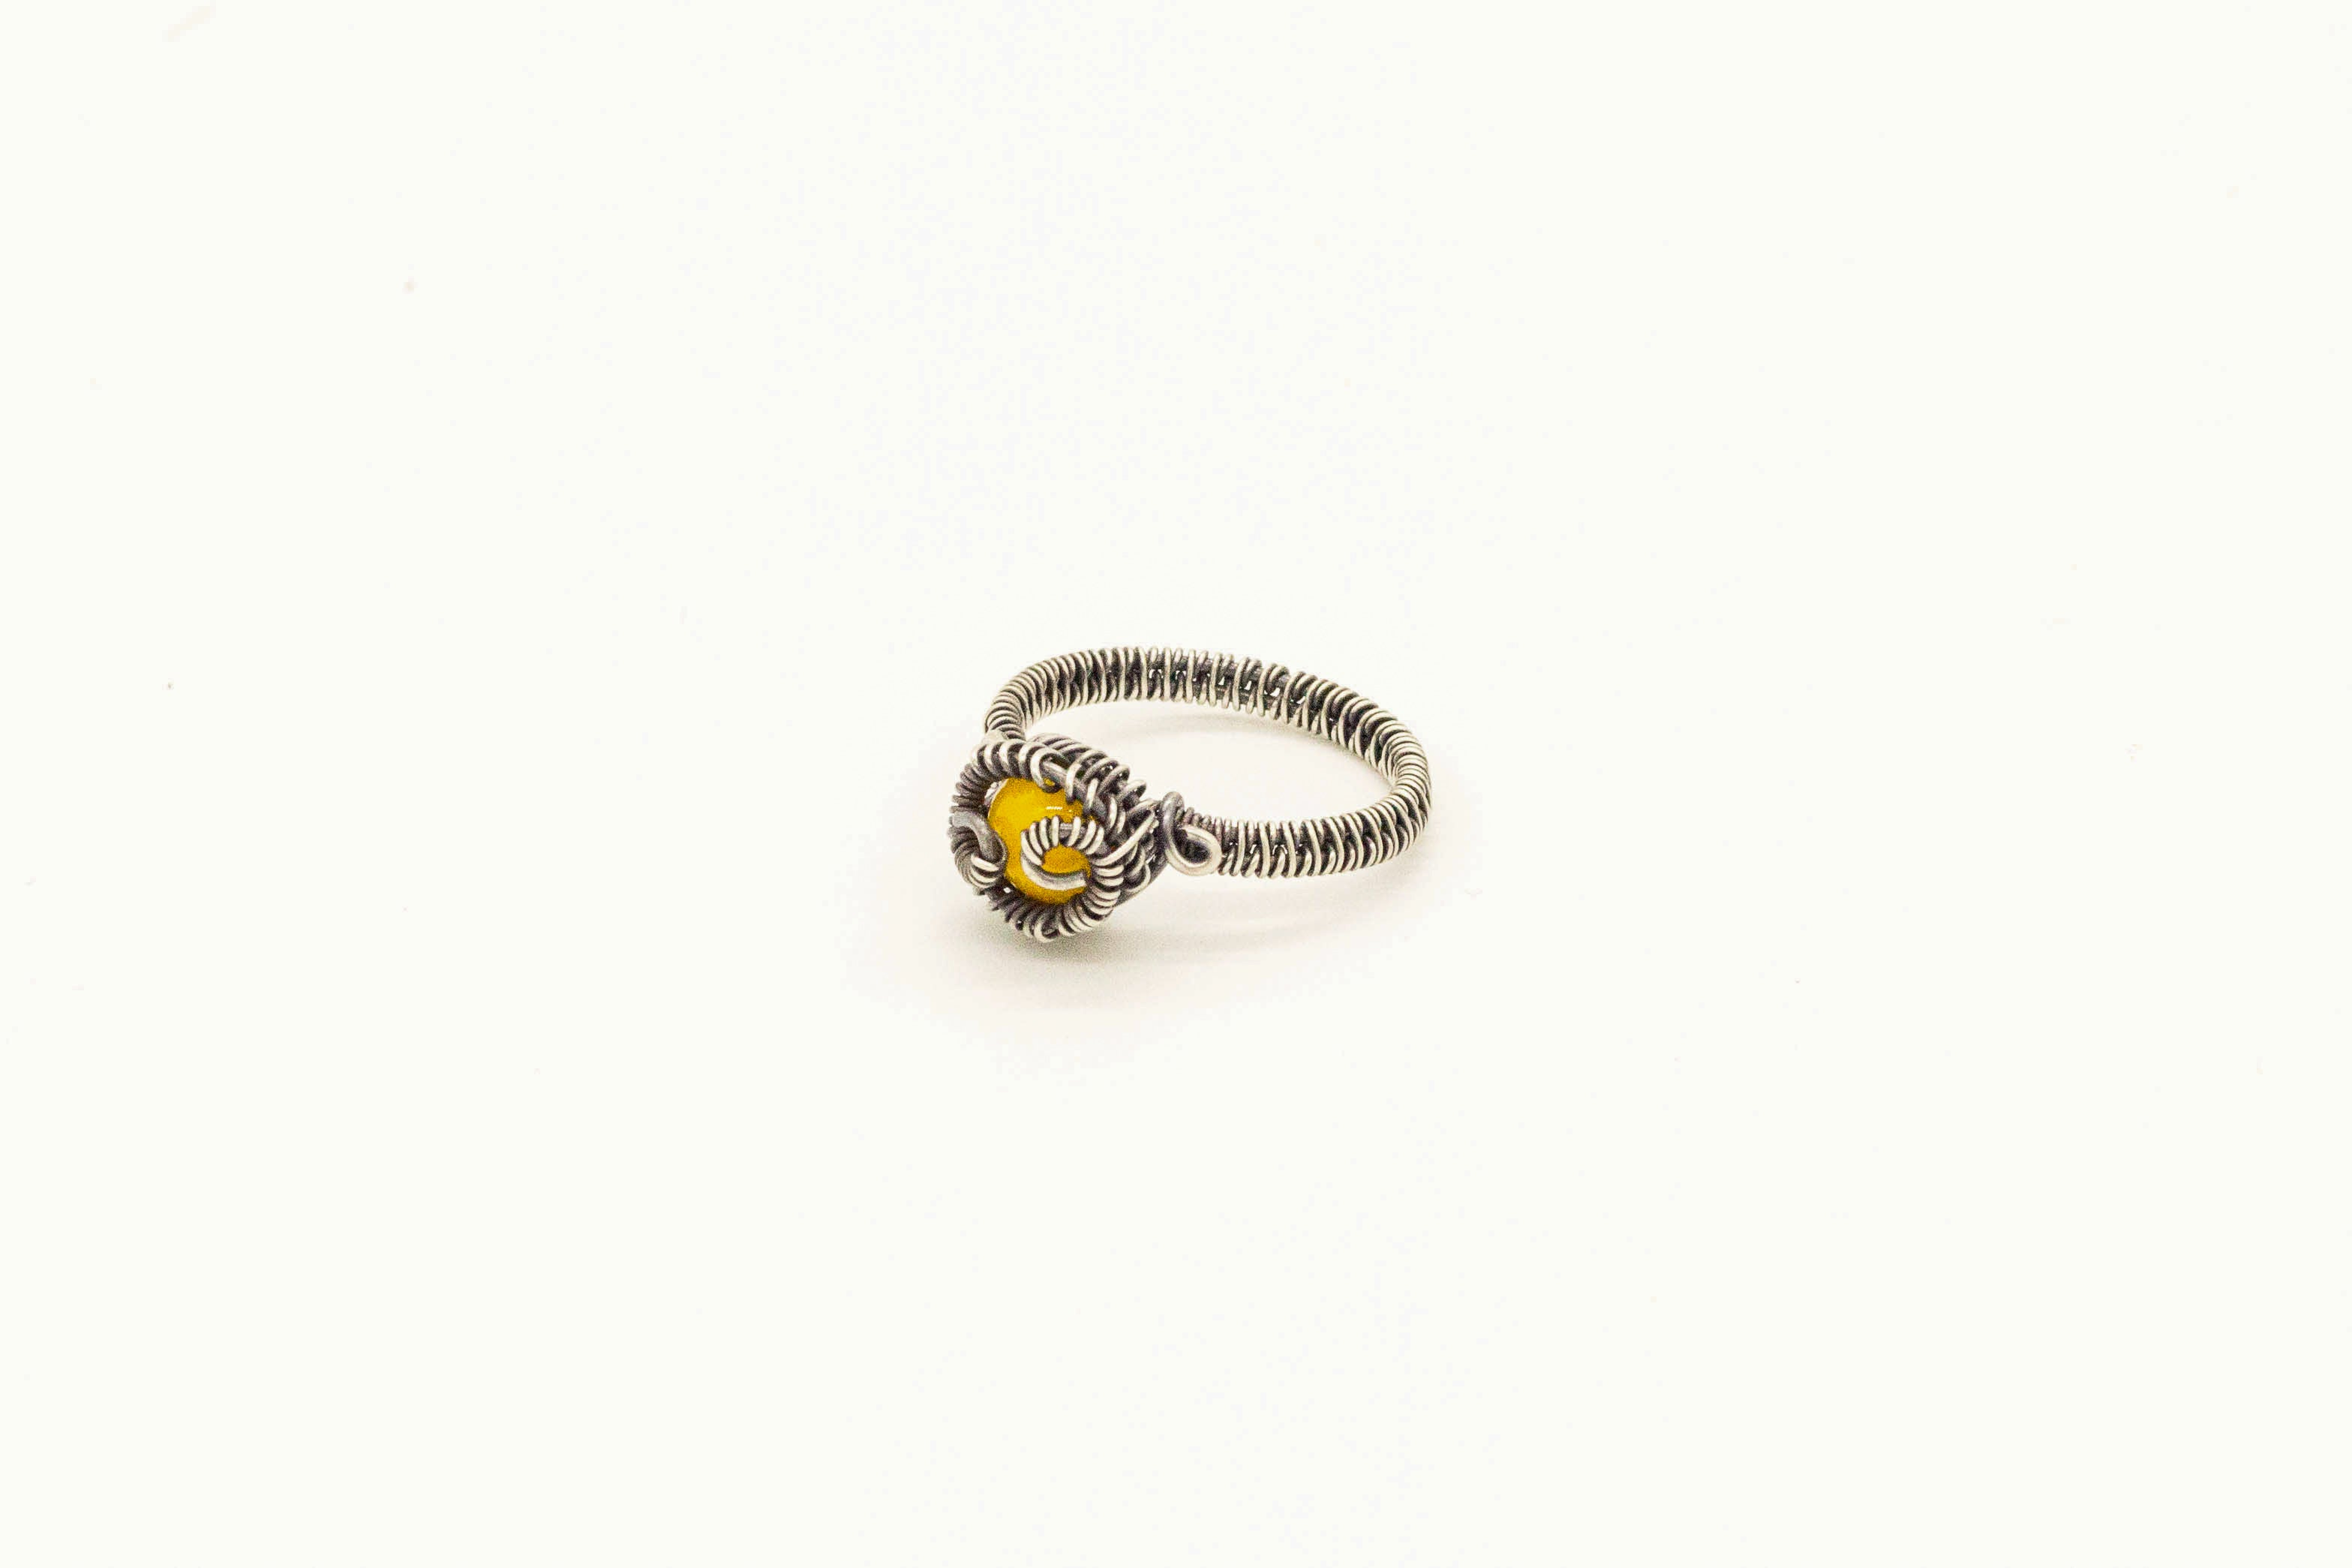 sterling-silver-wire-wrapped-ring-yellow-fused-glass-nymph-in-the-woods-jewelry